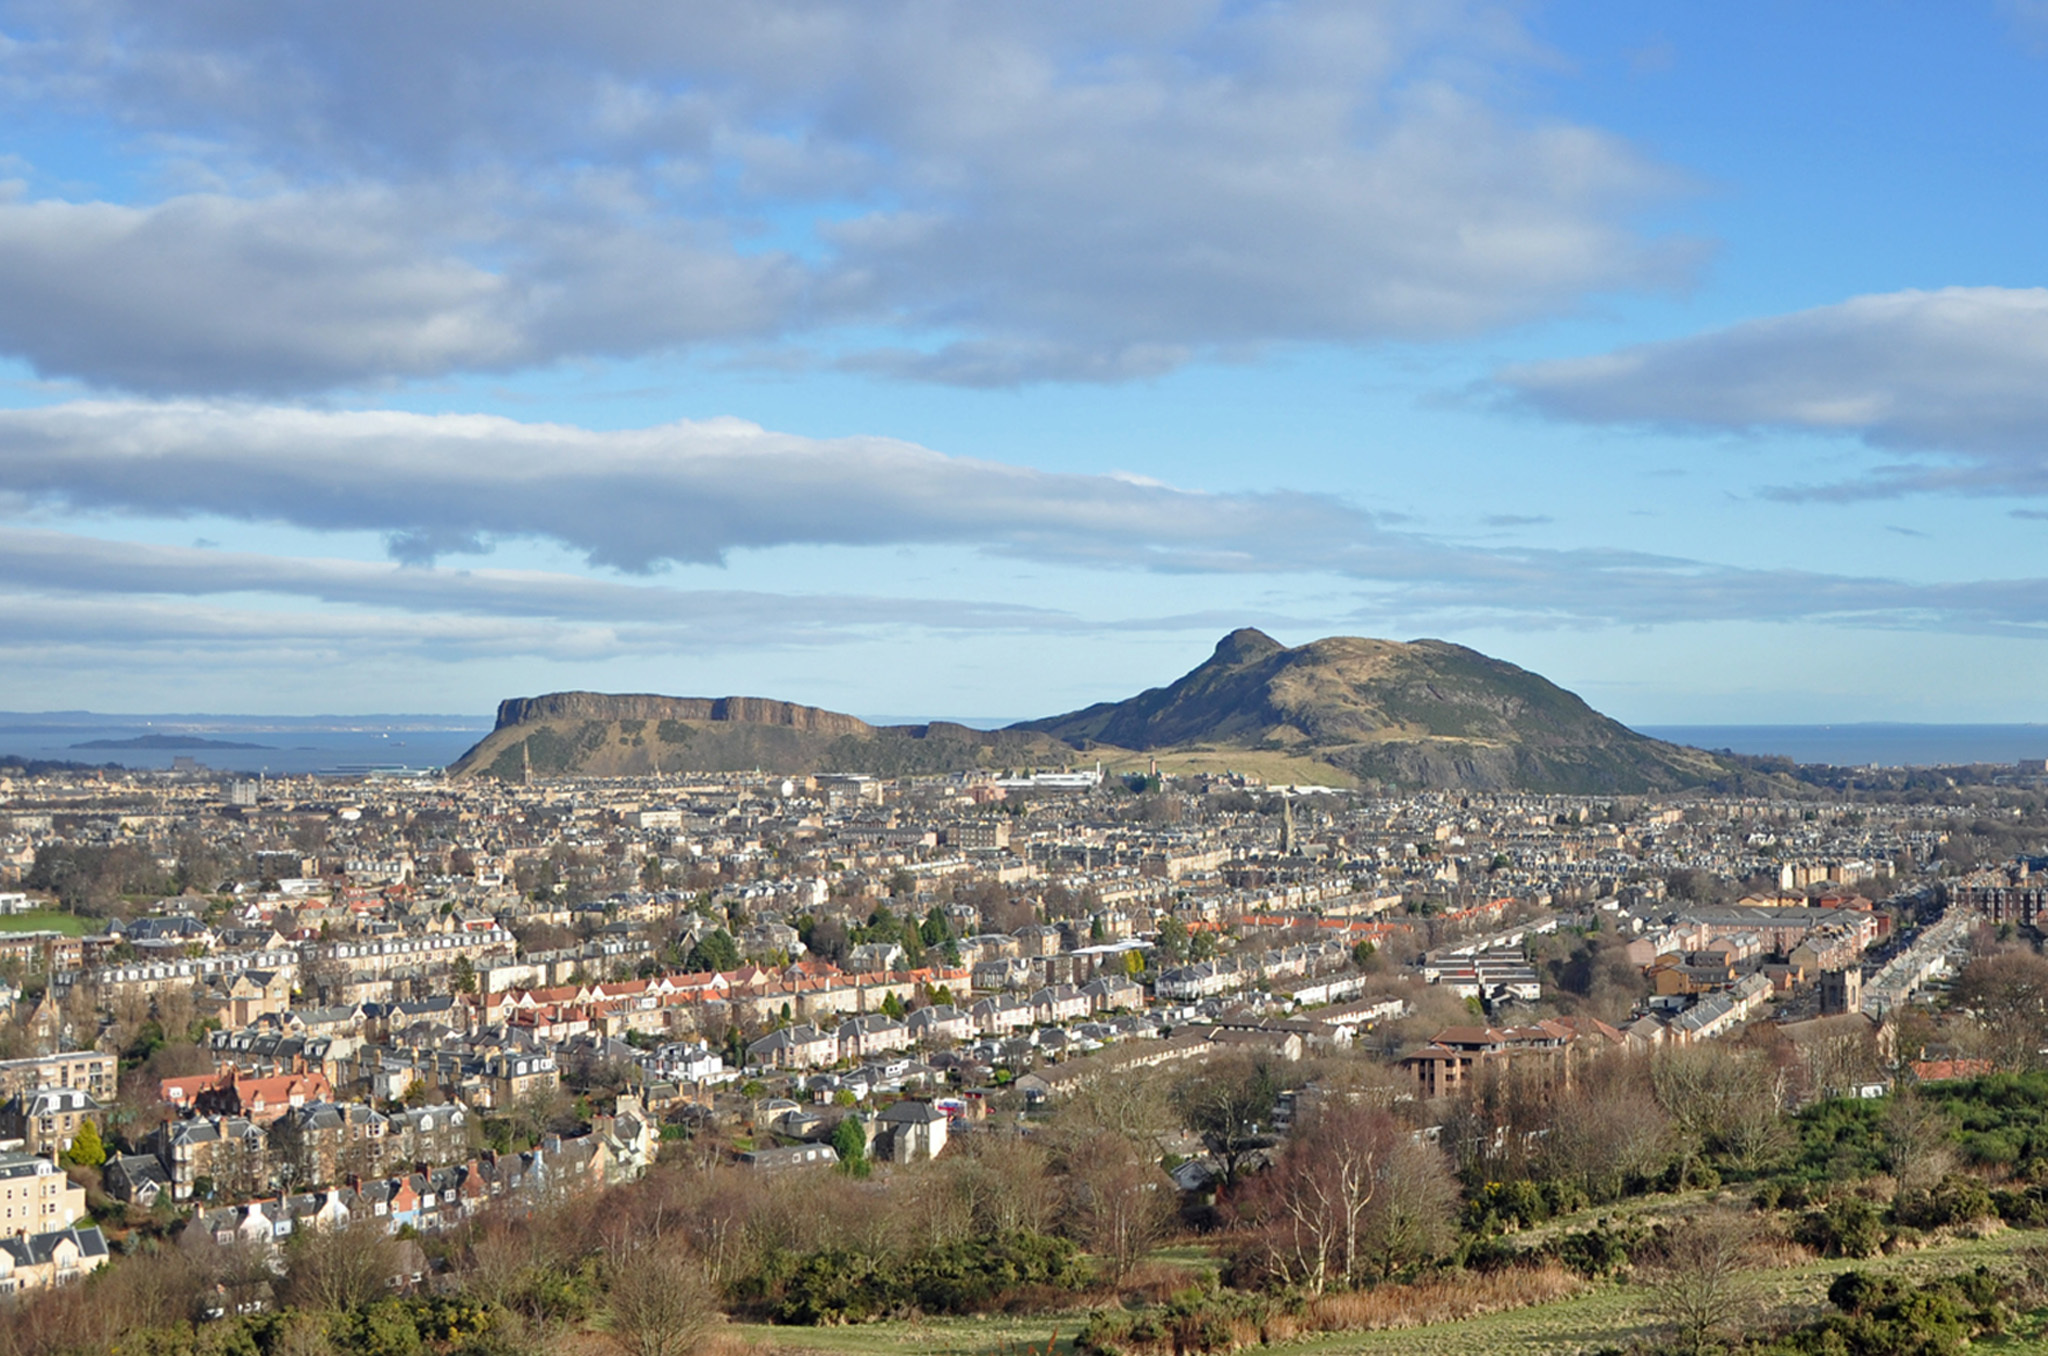 Arthur's Seat, Holyrood Park, Attractions, Things to do, Edinburgh